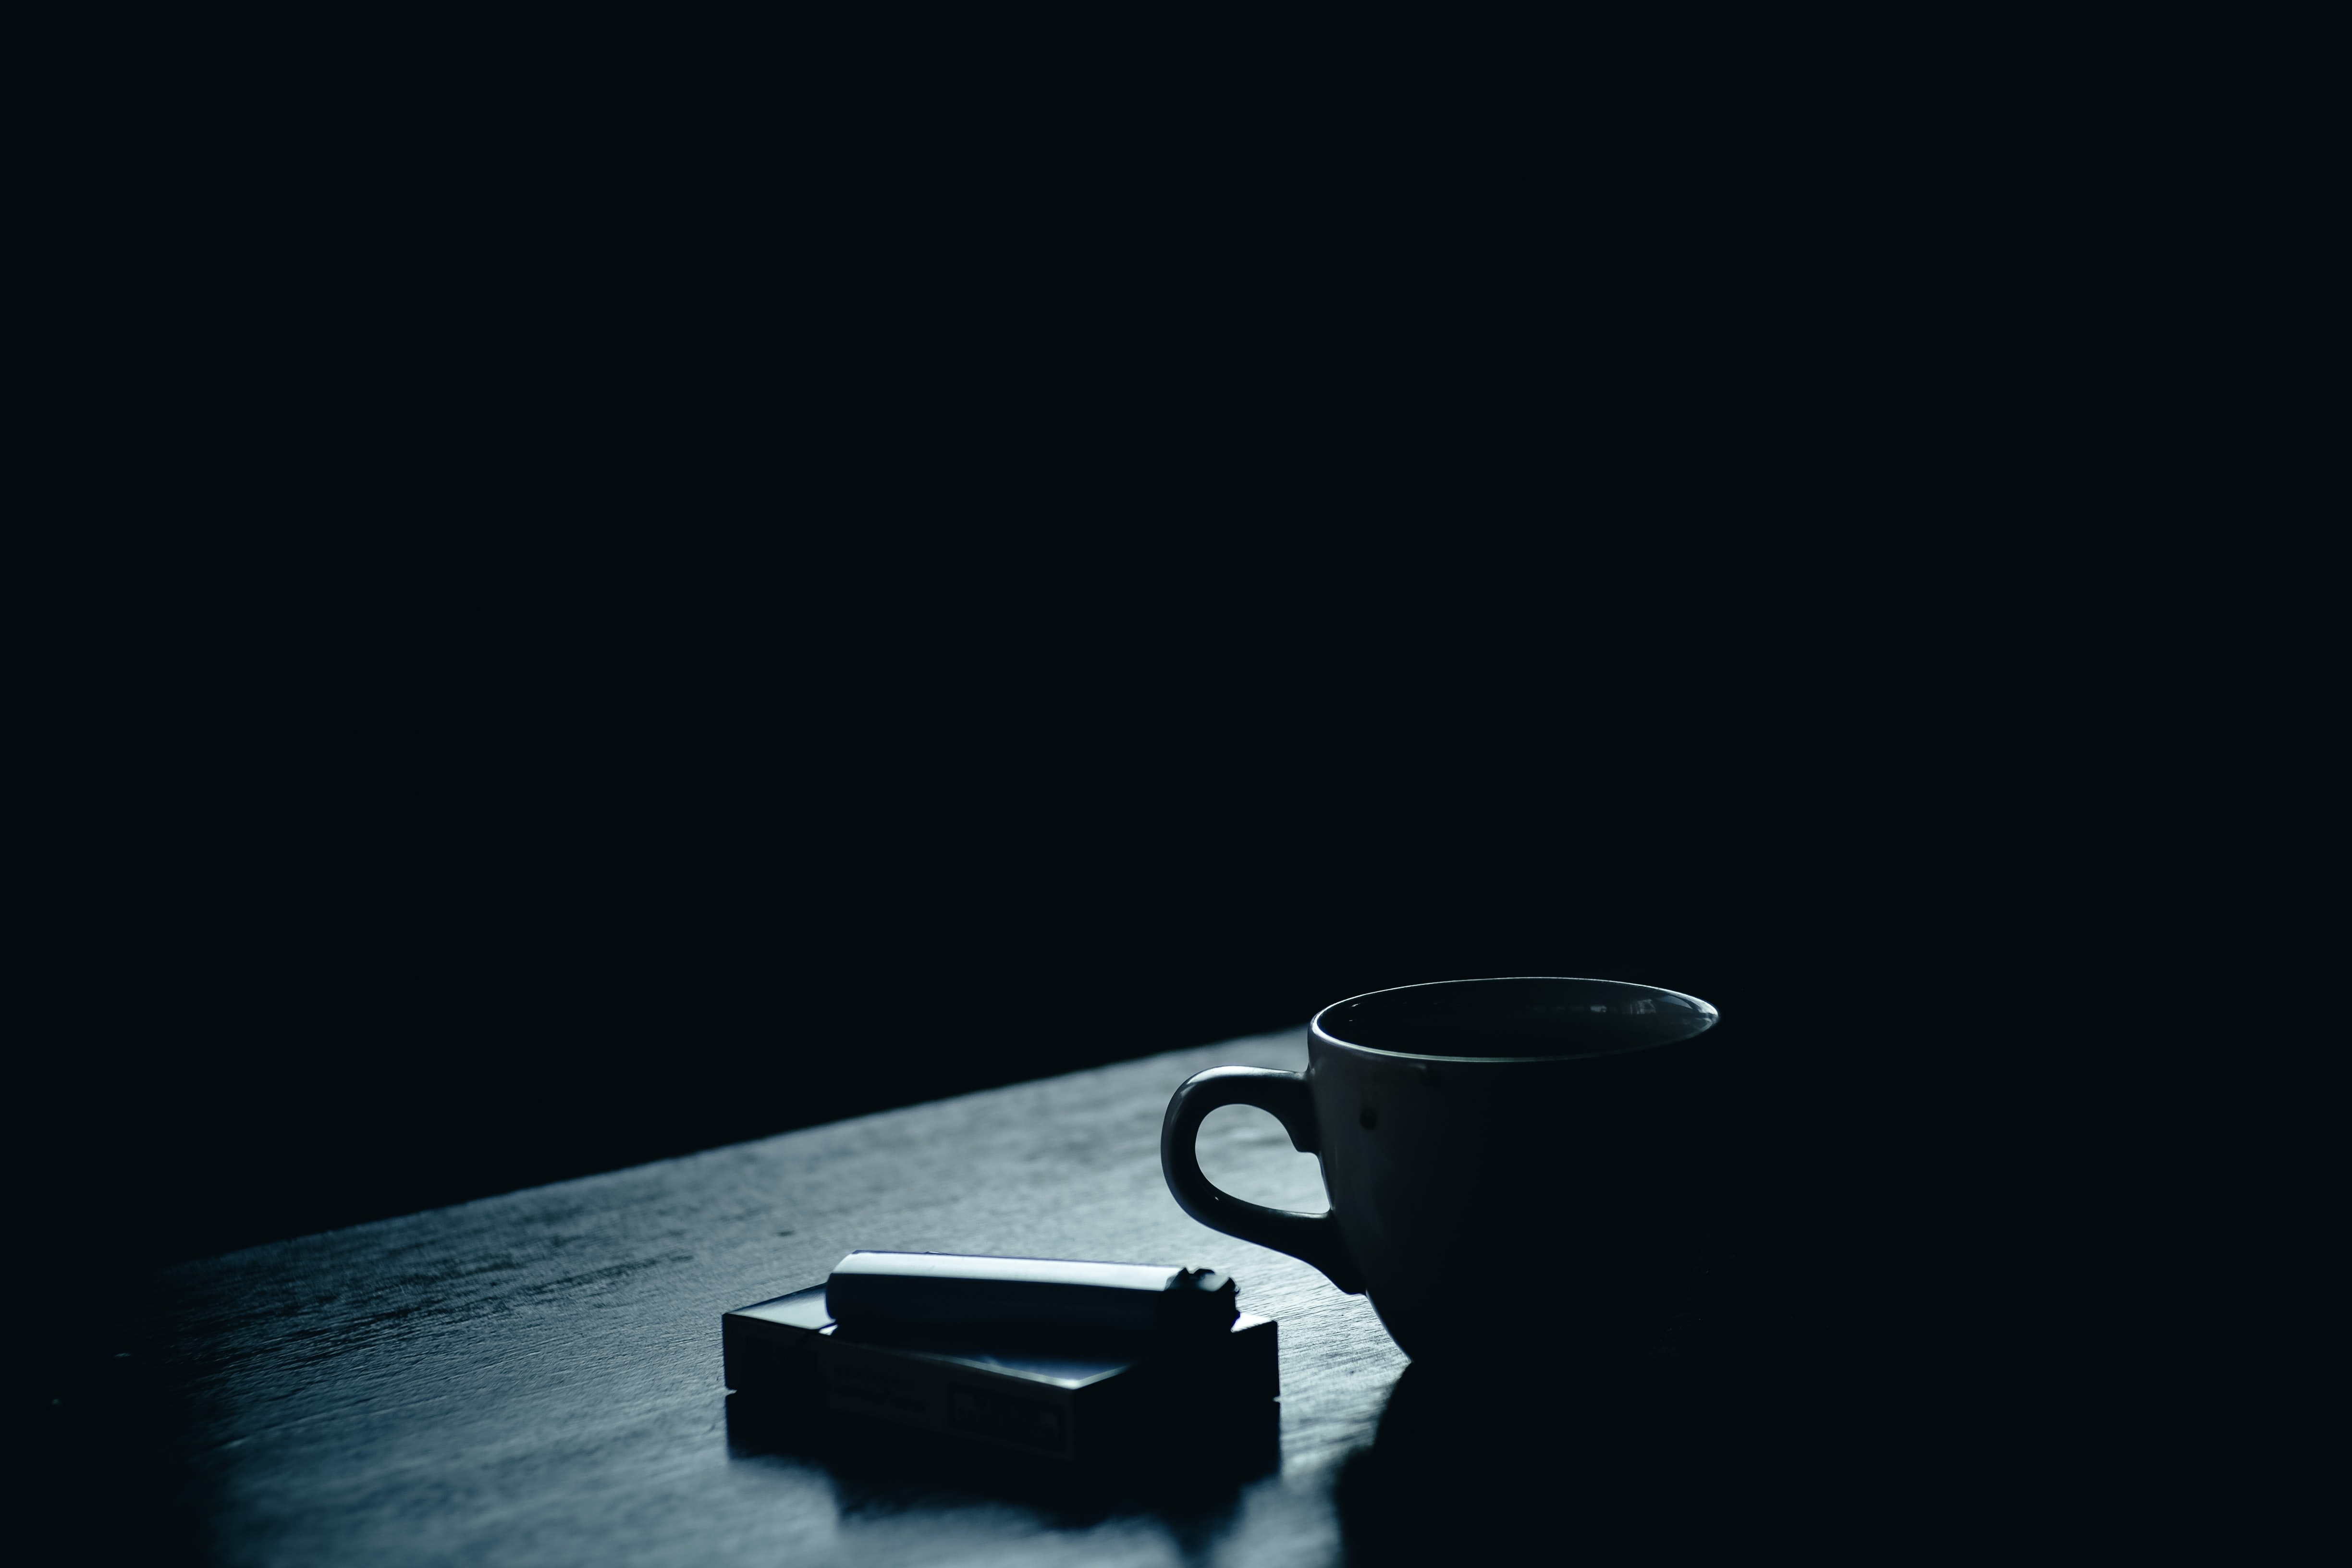 A dim shot of a pack of cigarettes and a lighter next to a teacup